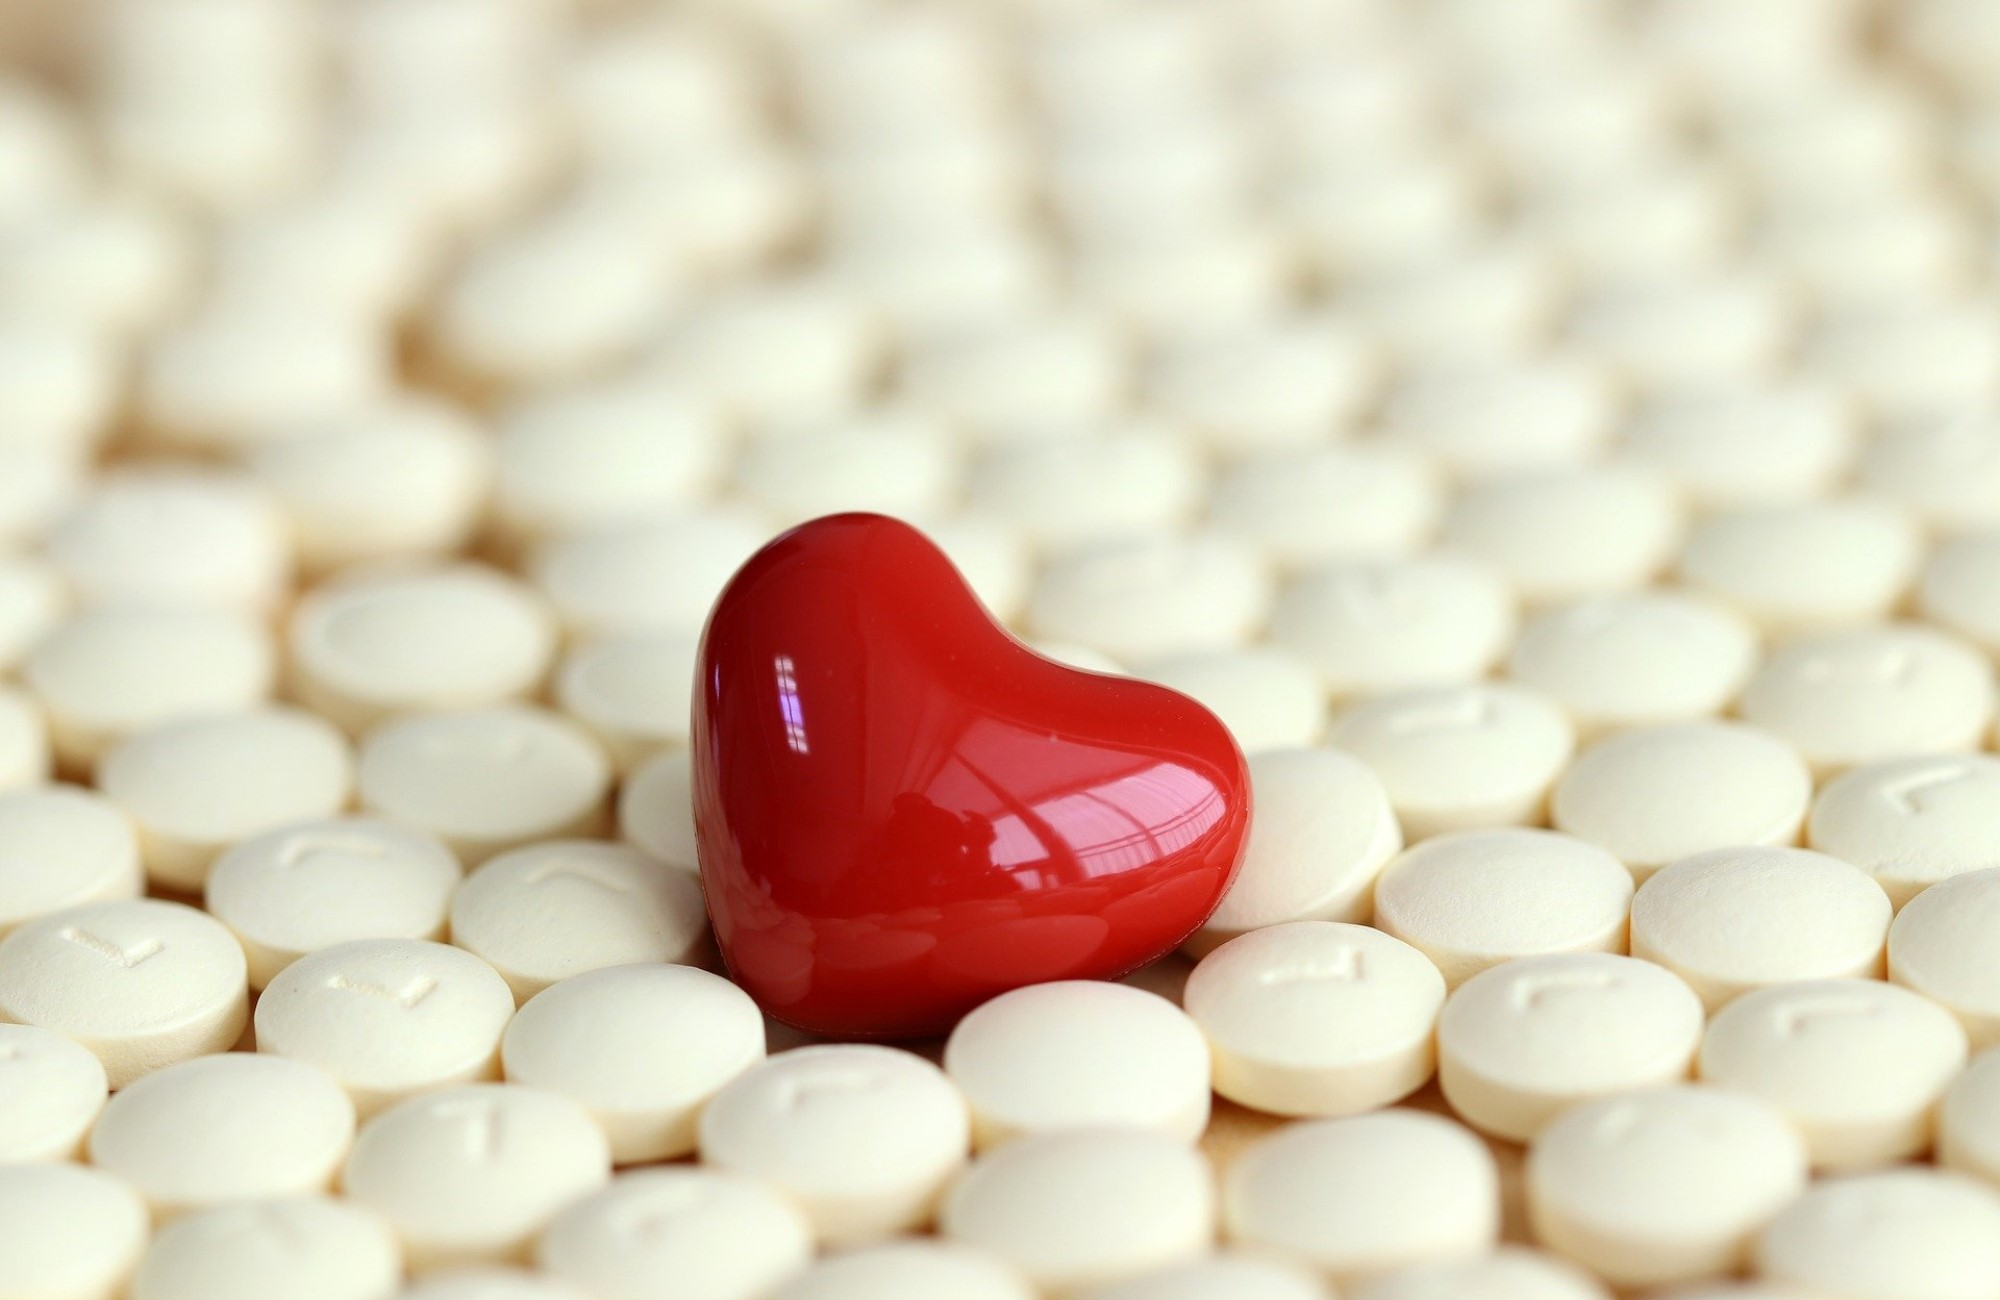 Future perspectives for pharmacy on atrial fibrillation